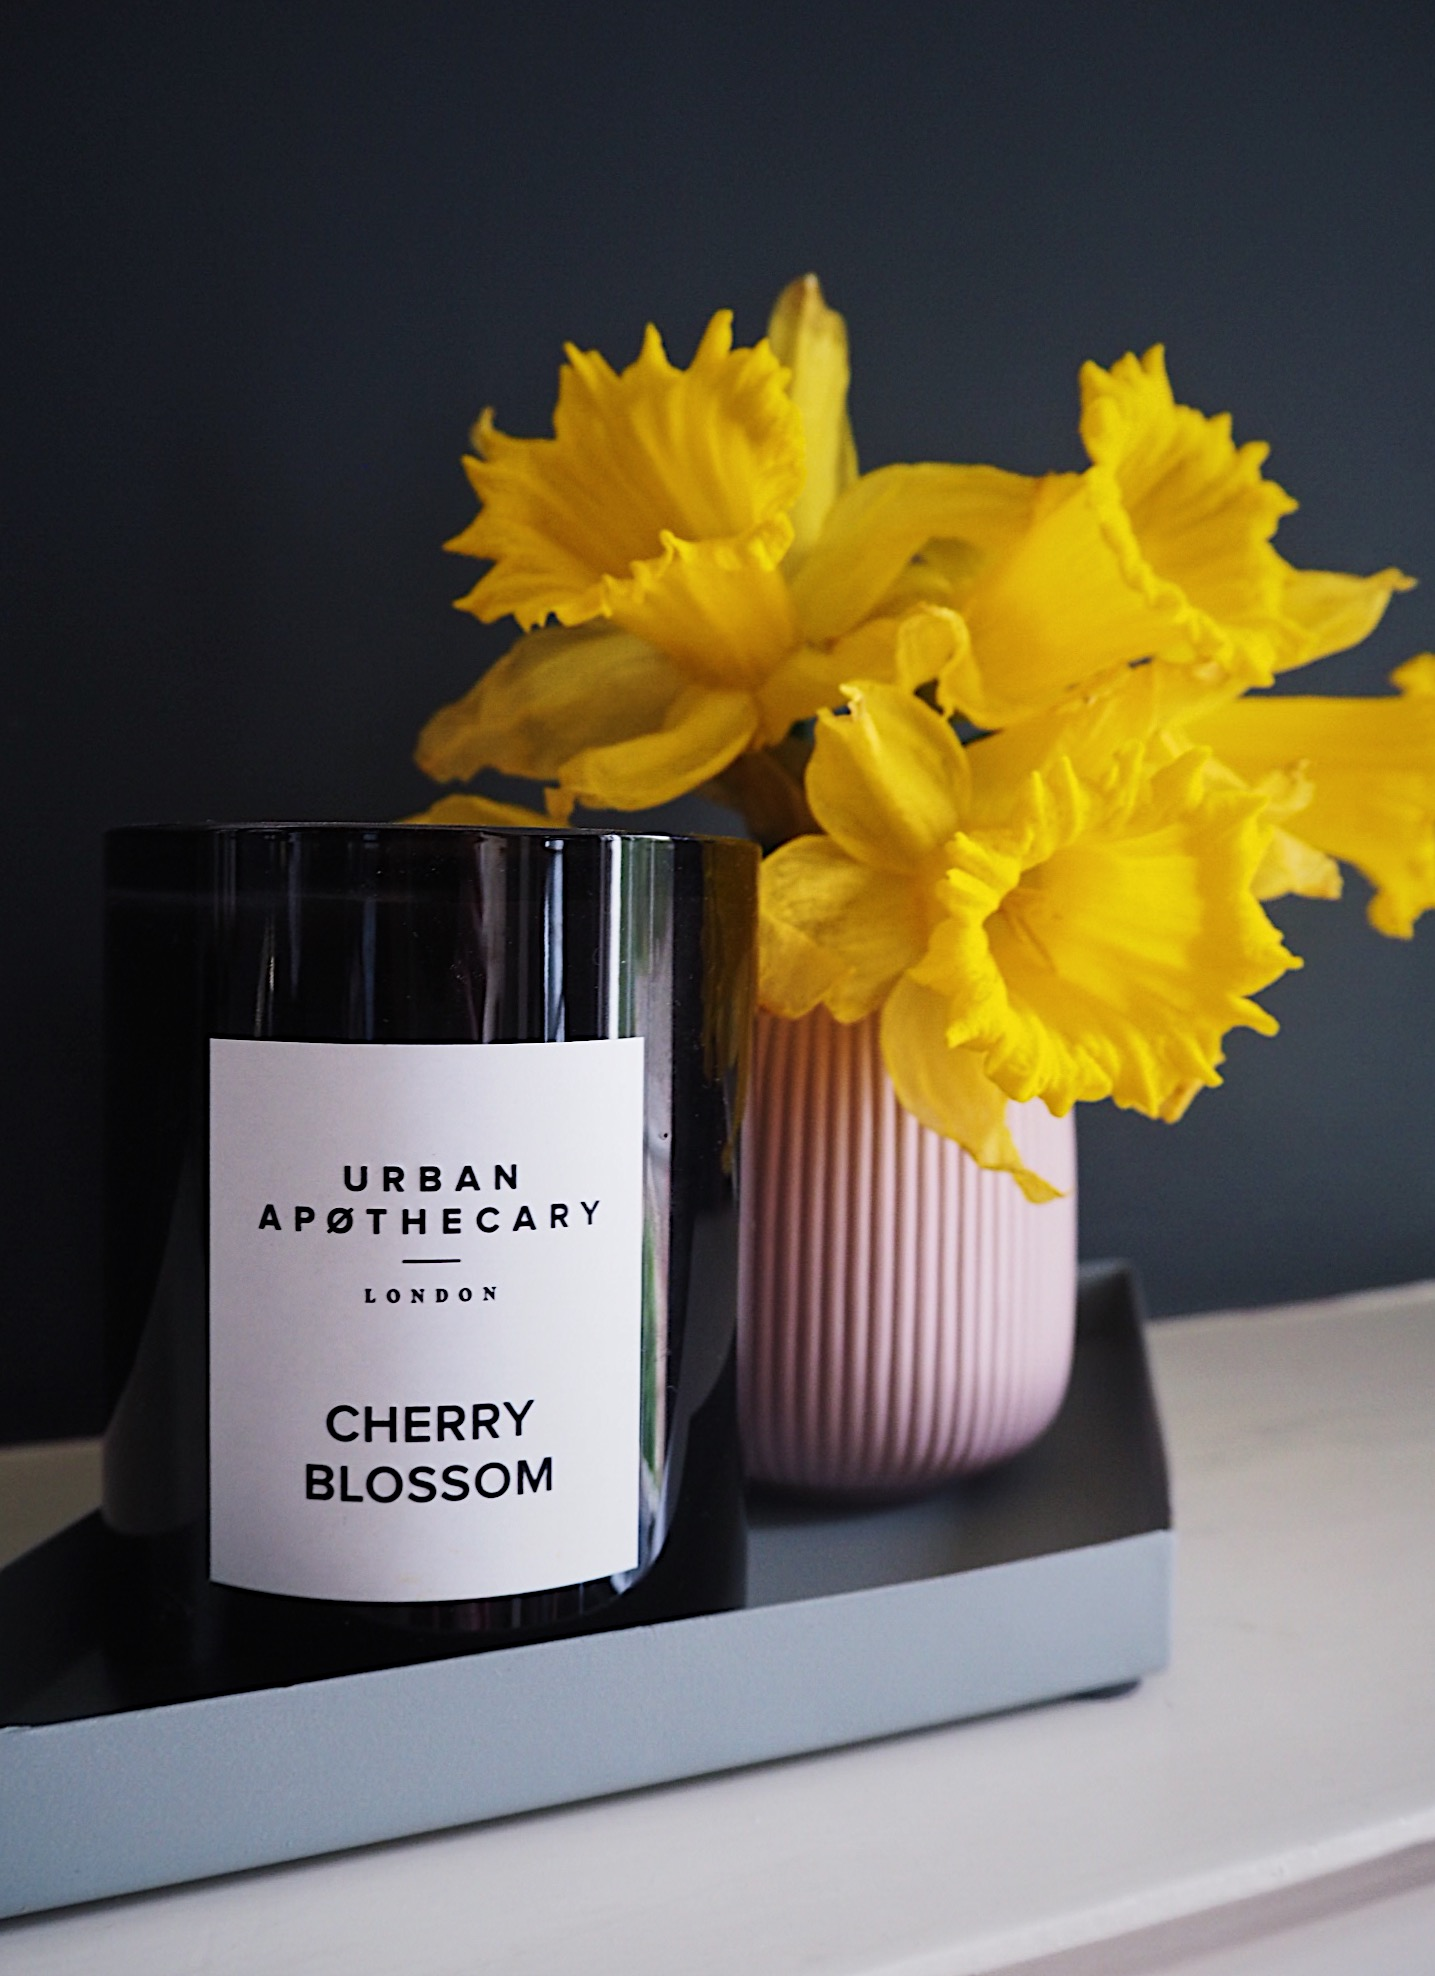 Urban Apothecary Cherry Blossom Candle - £30.